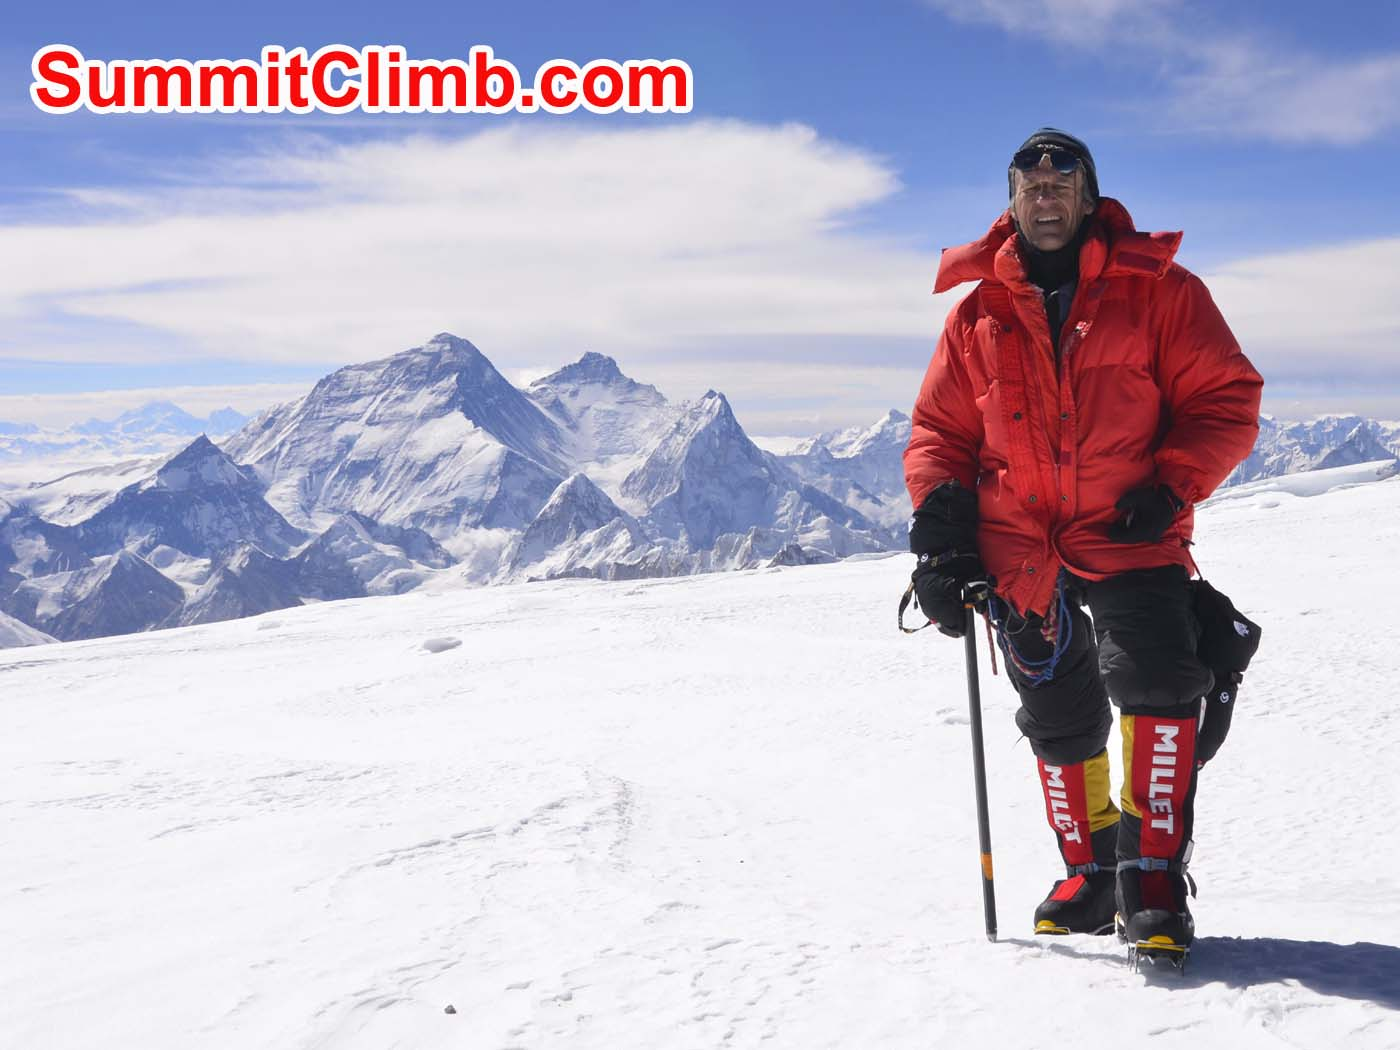 Dmitri on the summit 24 May. Pemba Sherpa Photo